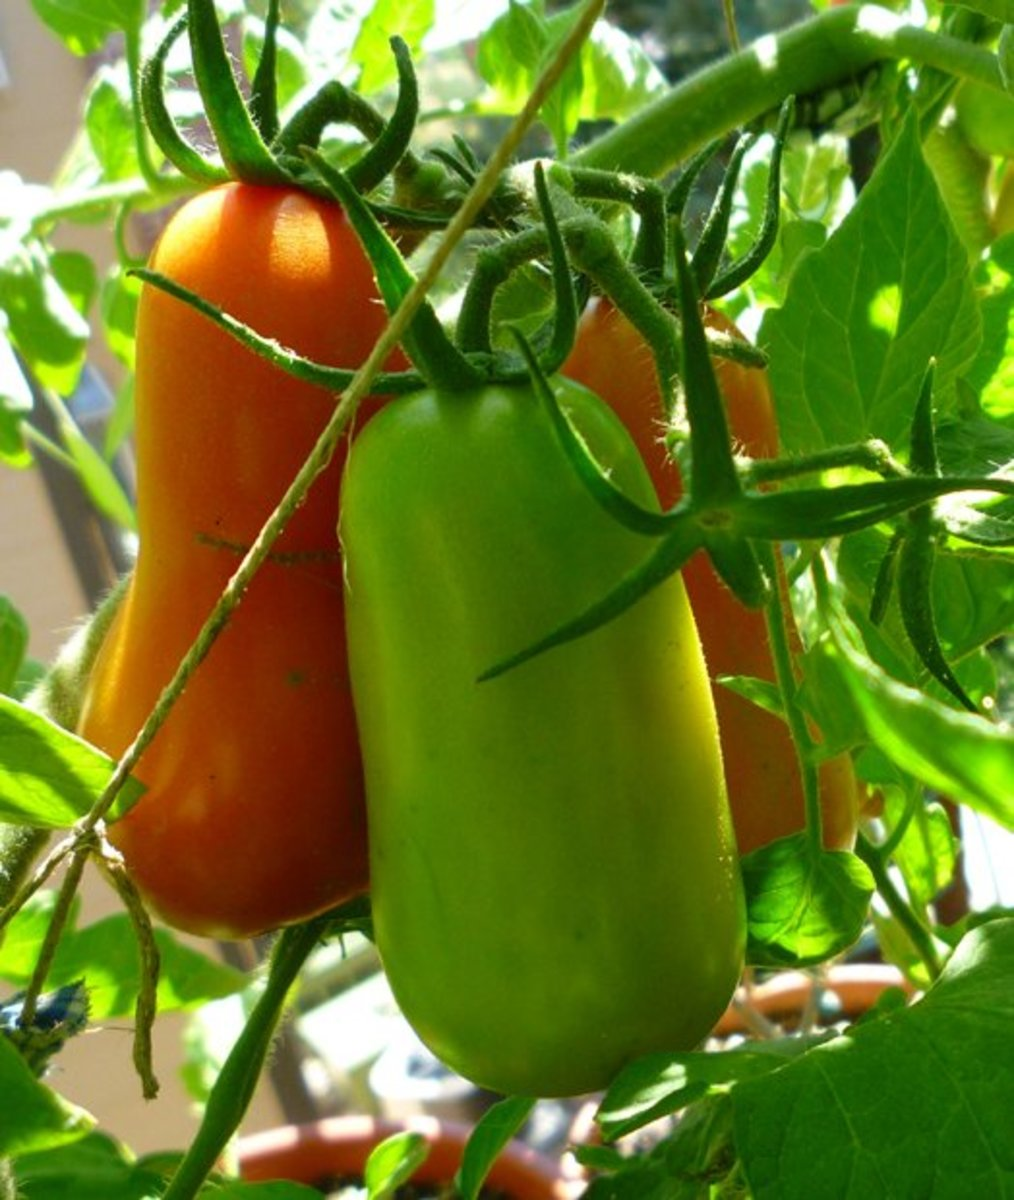 How to Grow and Care for San Marzano Tomato Plants